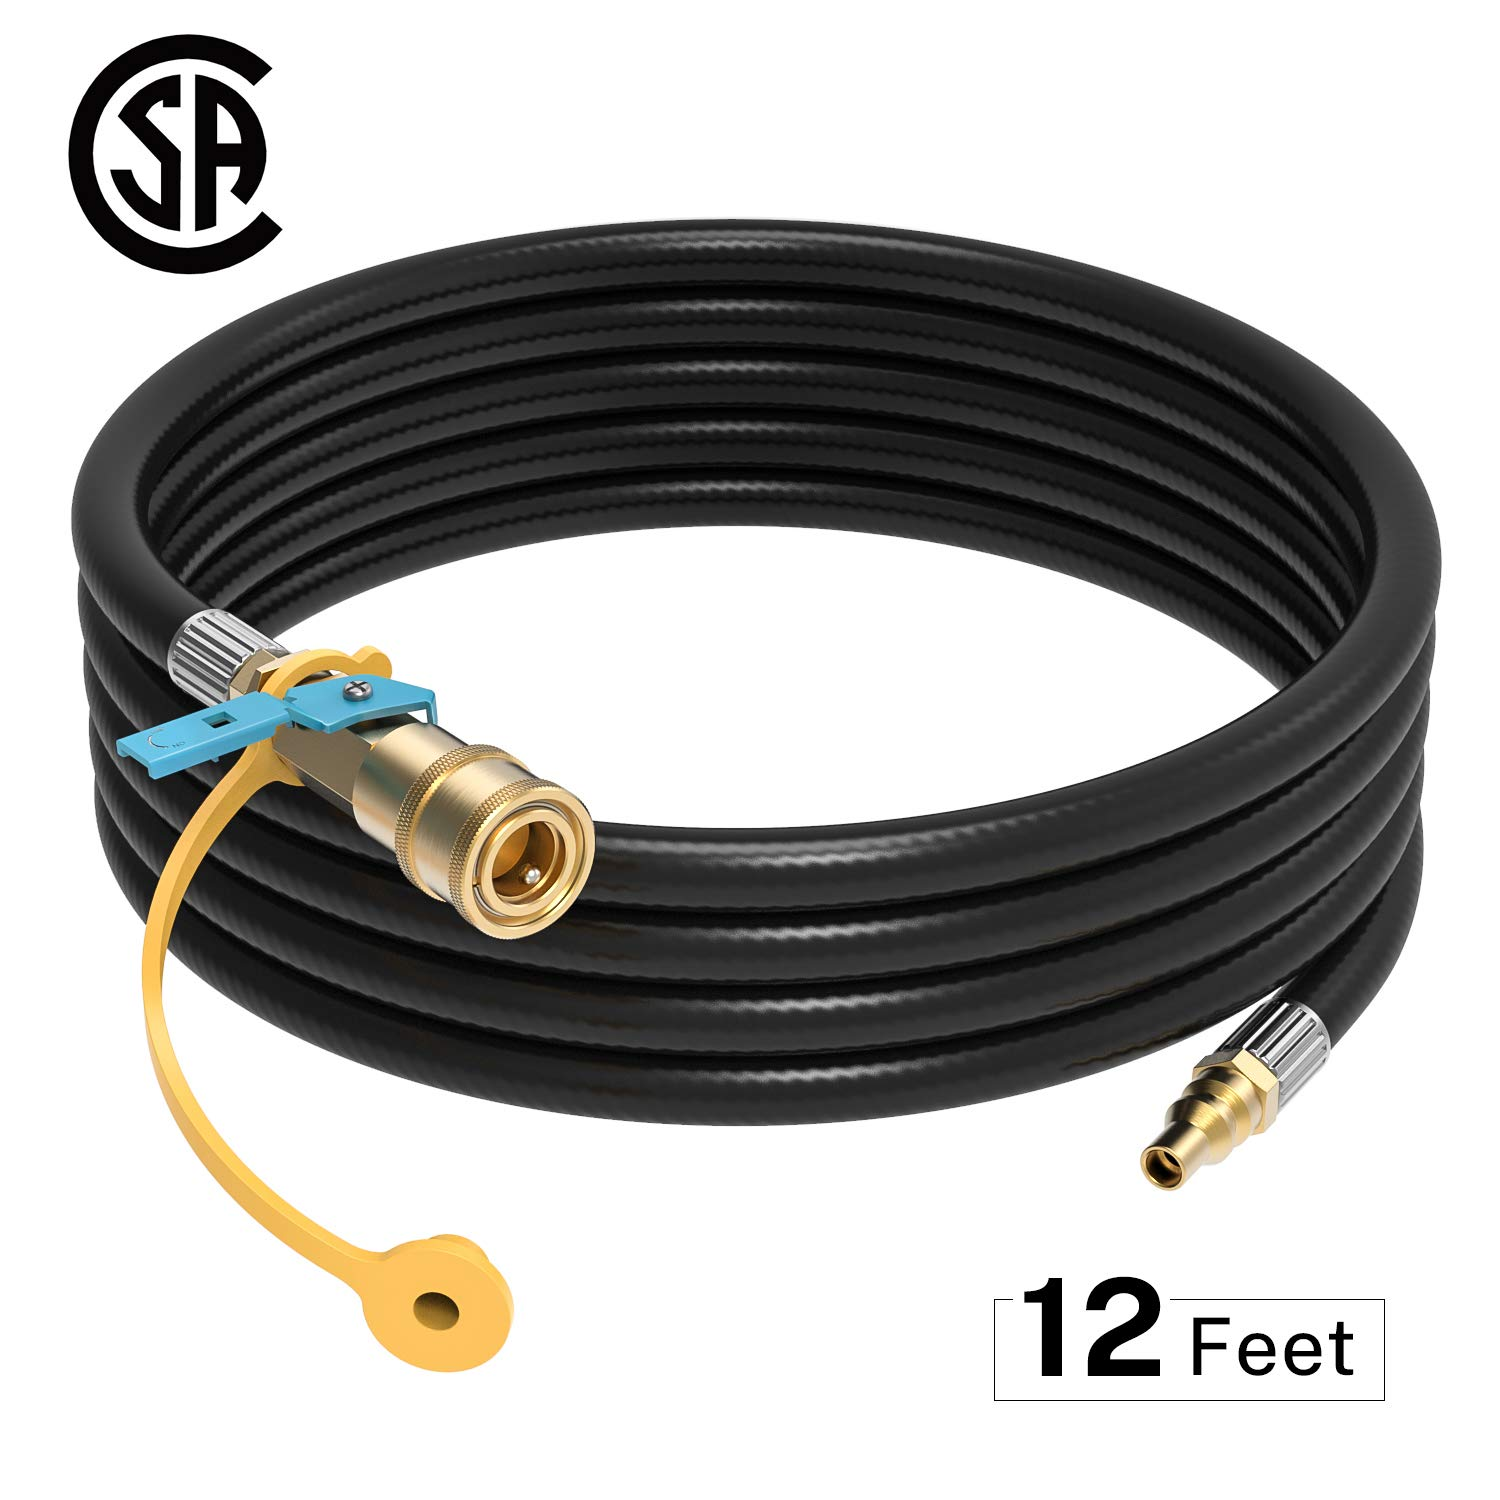 Kohree RV Propane Hose 12FT 1/4inch RV Quick Connect Propane Hose Quick Disconnect Propane Hose Extension with Shutoff Valve Male Full Flow Plug for Low Pressure Grills